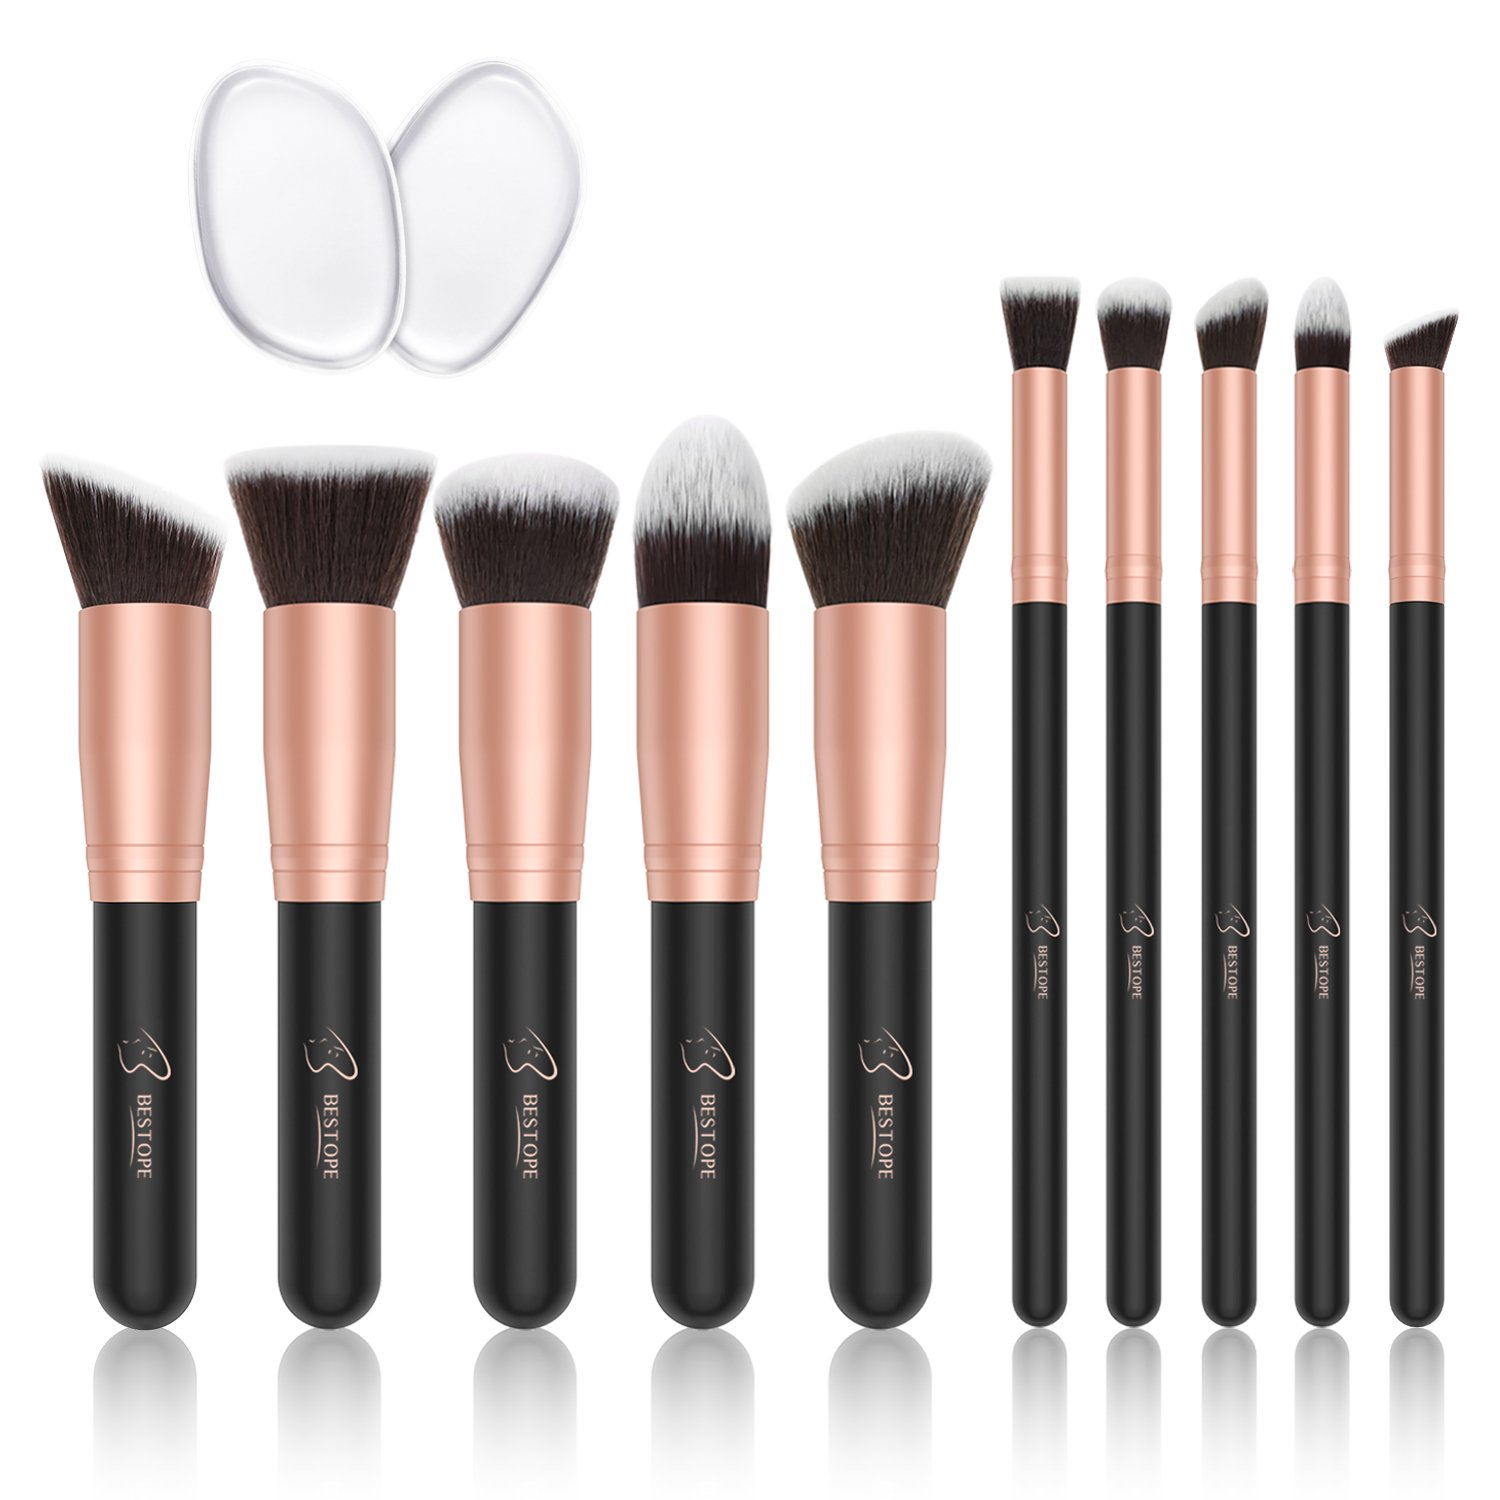 BESTOPE Make-up Pinsel Premium Kosmetik Make-up Pinsel Set Synthetische Kabuki mit 2 Pack Silikon Make-up Schwämme Eyeliner Blush Contour Bürsten für Powder Creme Concealer Pinsel Kit (10 Stücke, Rose Gold)